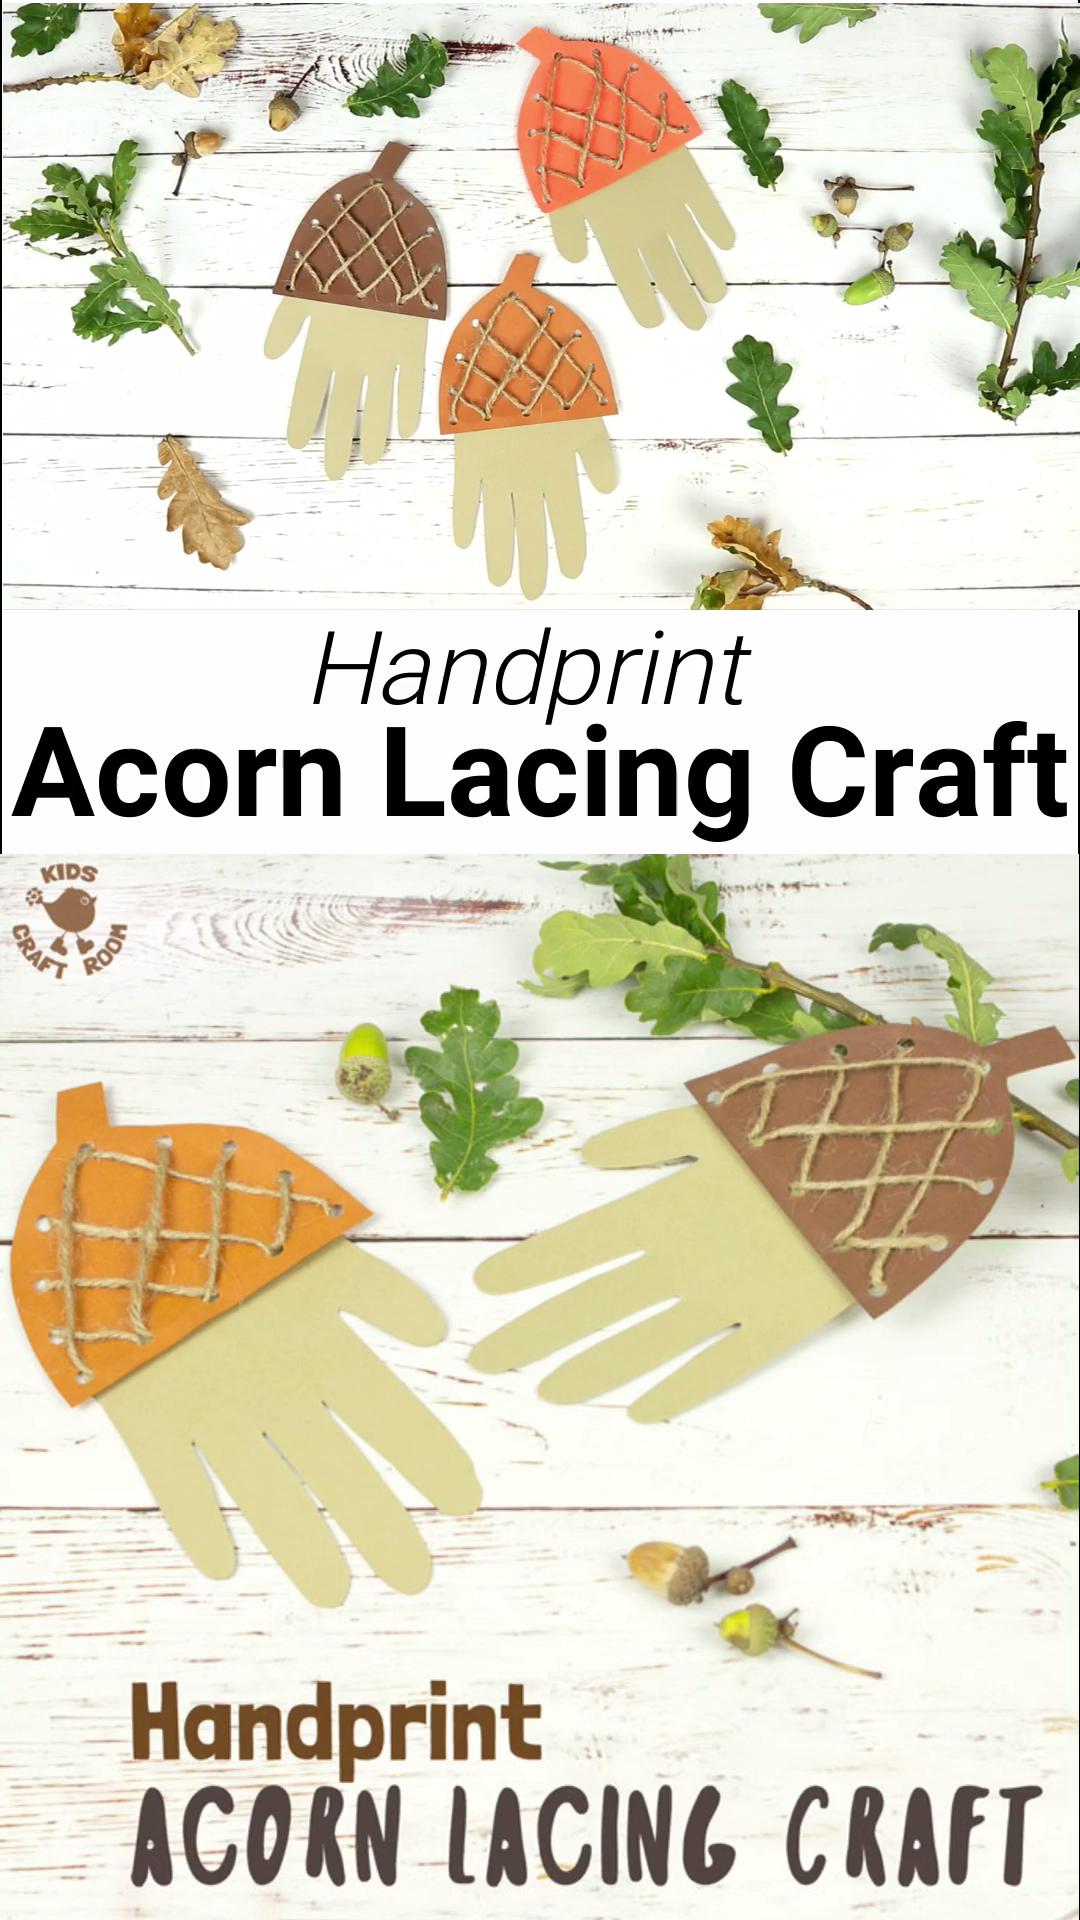 Handprint Acorn Lacing Craft